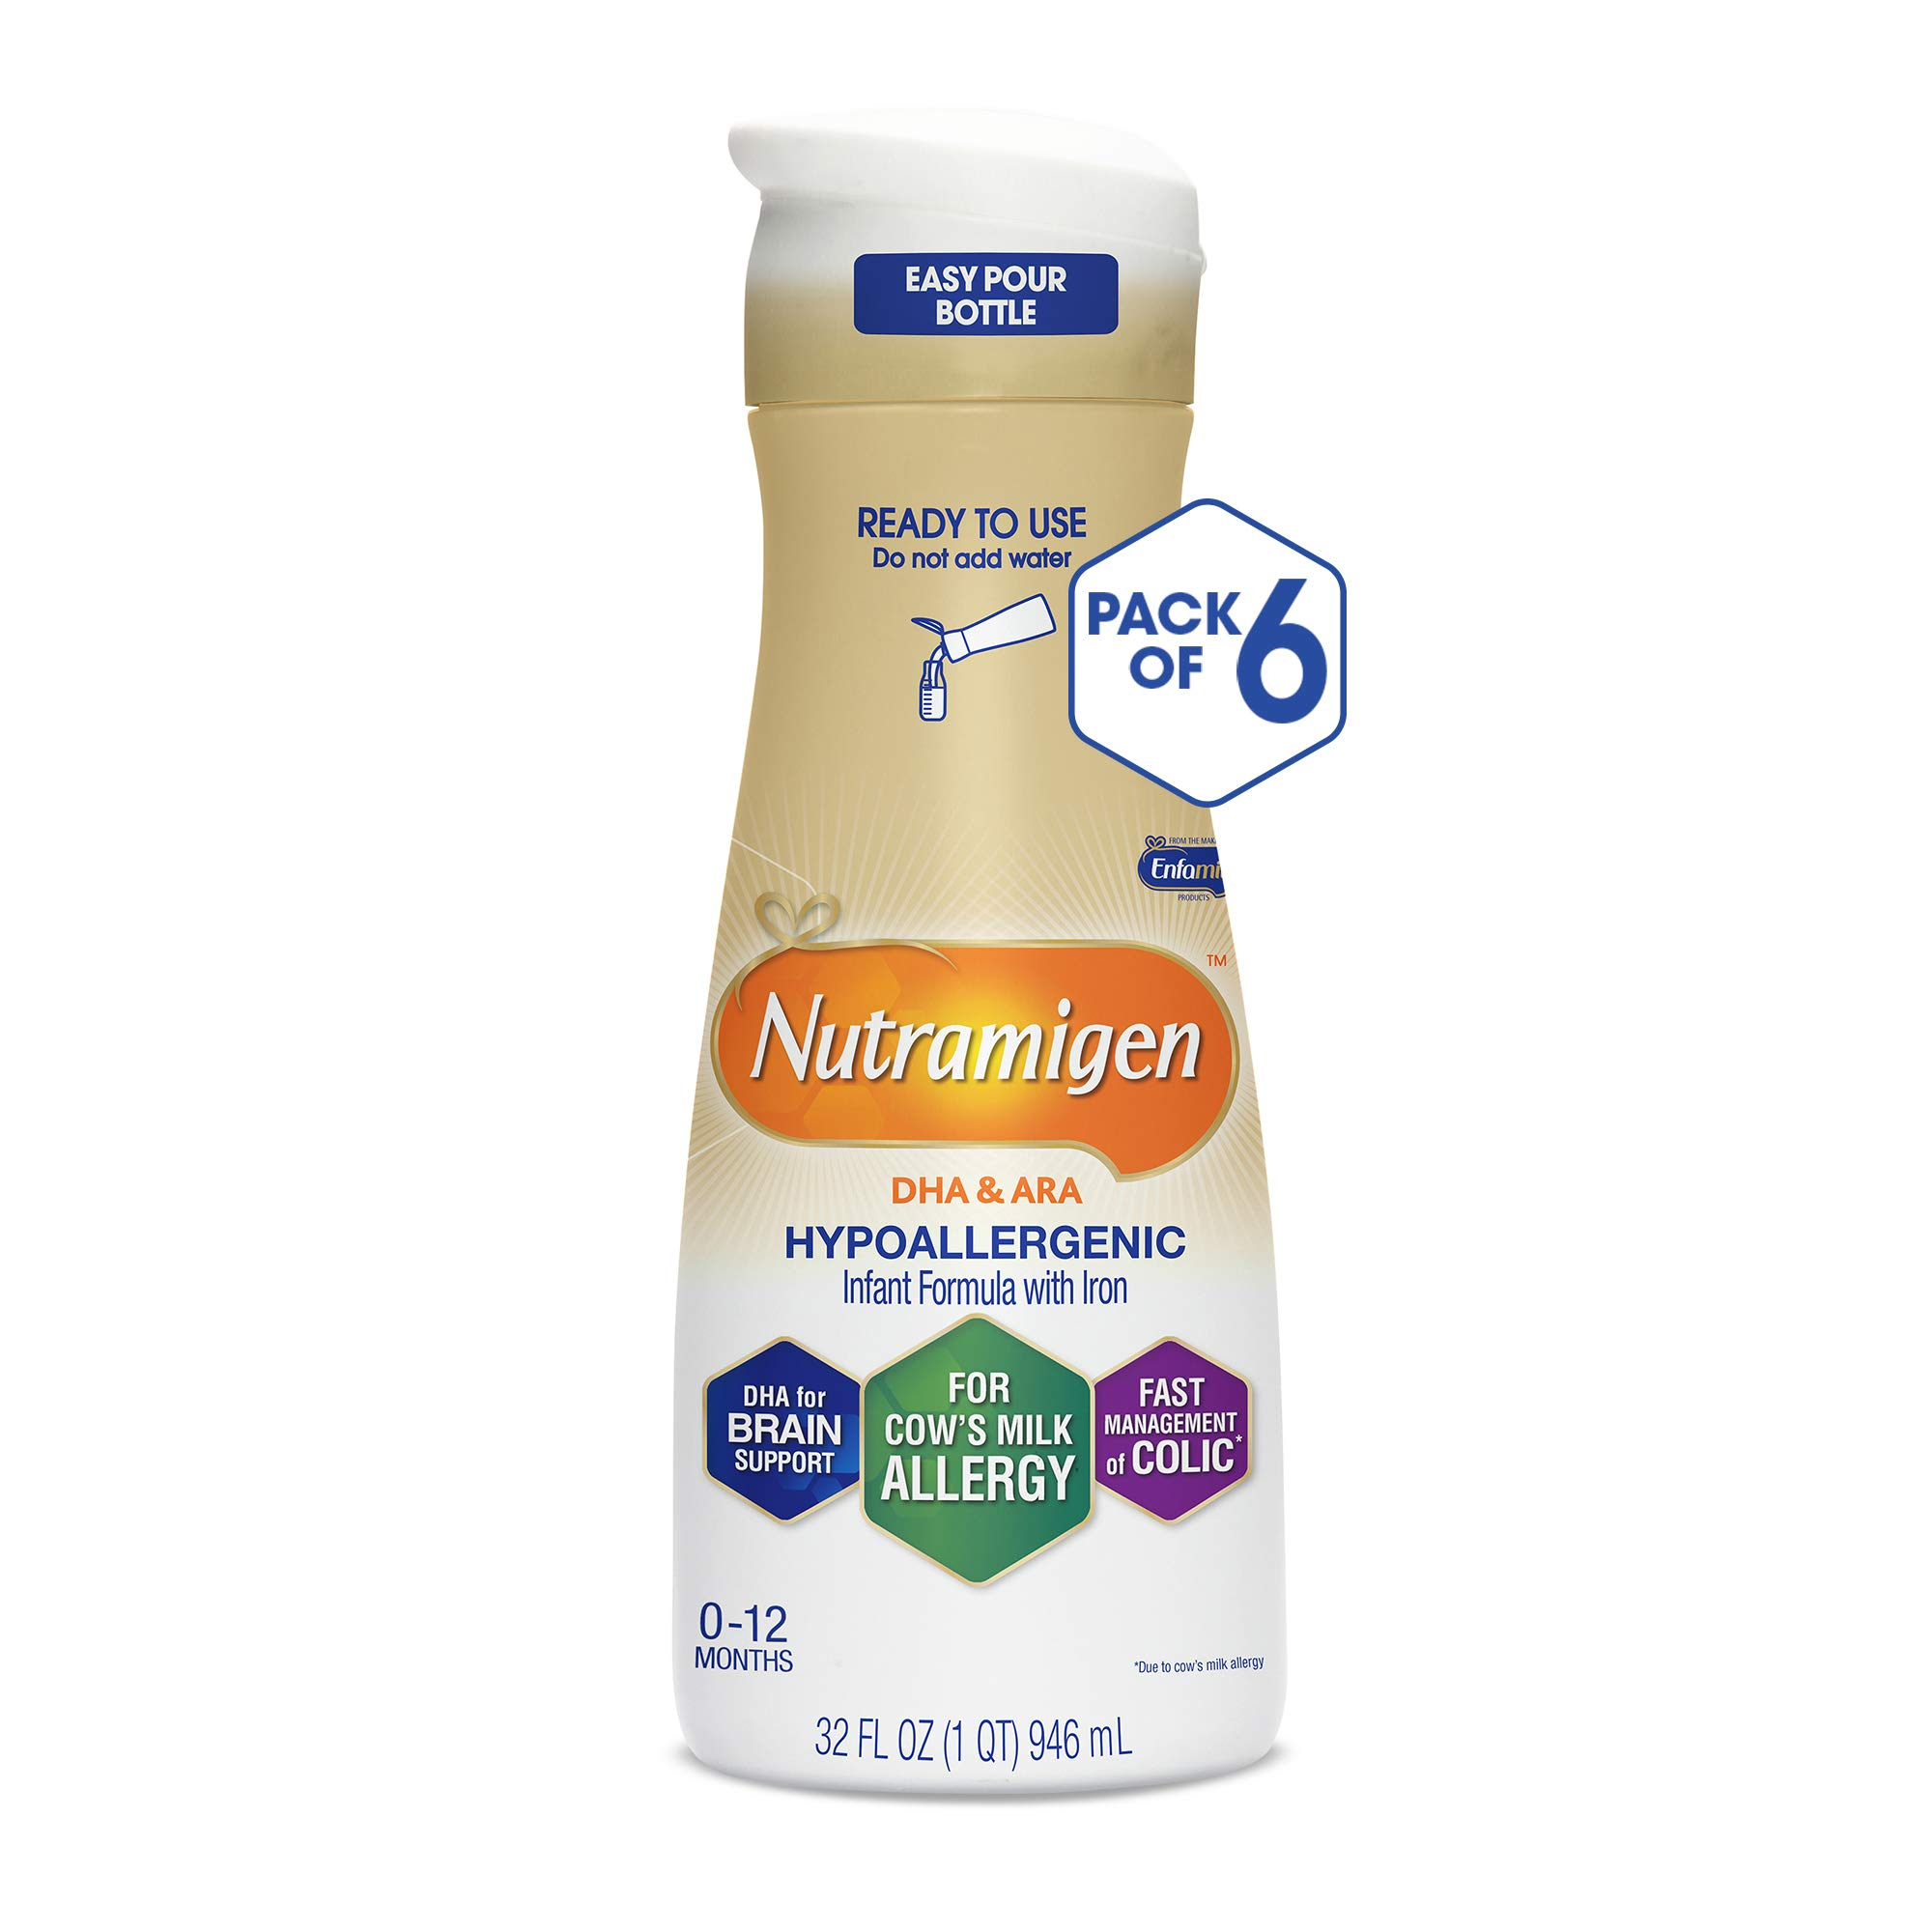 Enfamil Nutramigen Infant Formula - Hypoallergenic & Lactose-Free for Fast Colic Management - Ready to Use Liquid, 32 fl oz (6 count)